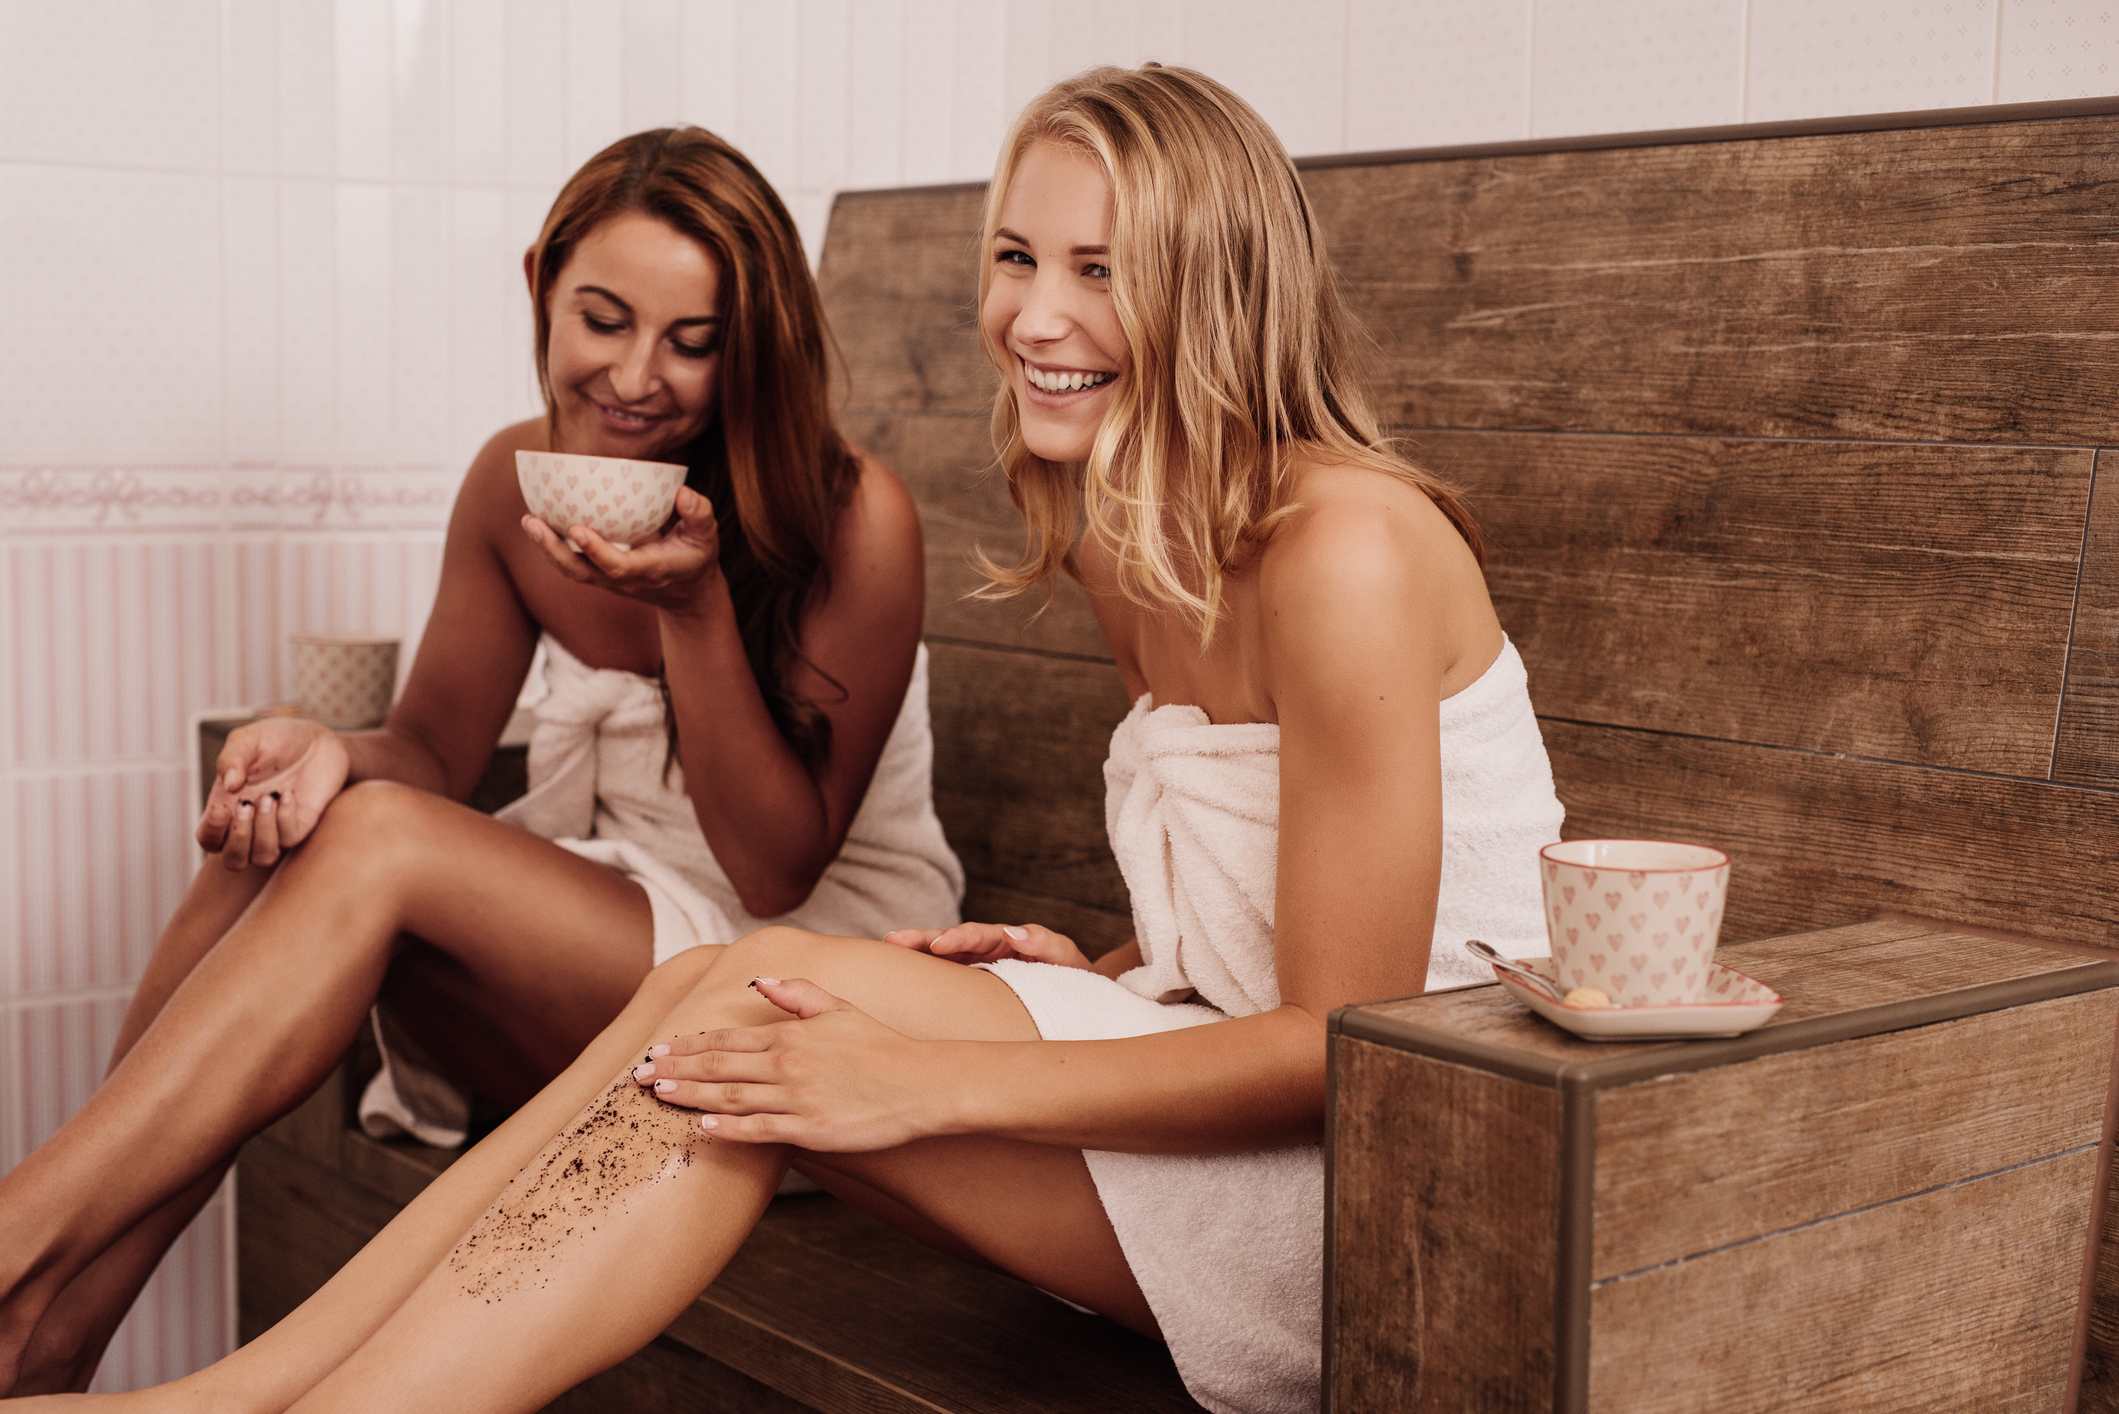 Women crubbing with coffee in health spa Photo taken indoors of young women with beauty treatment